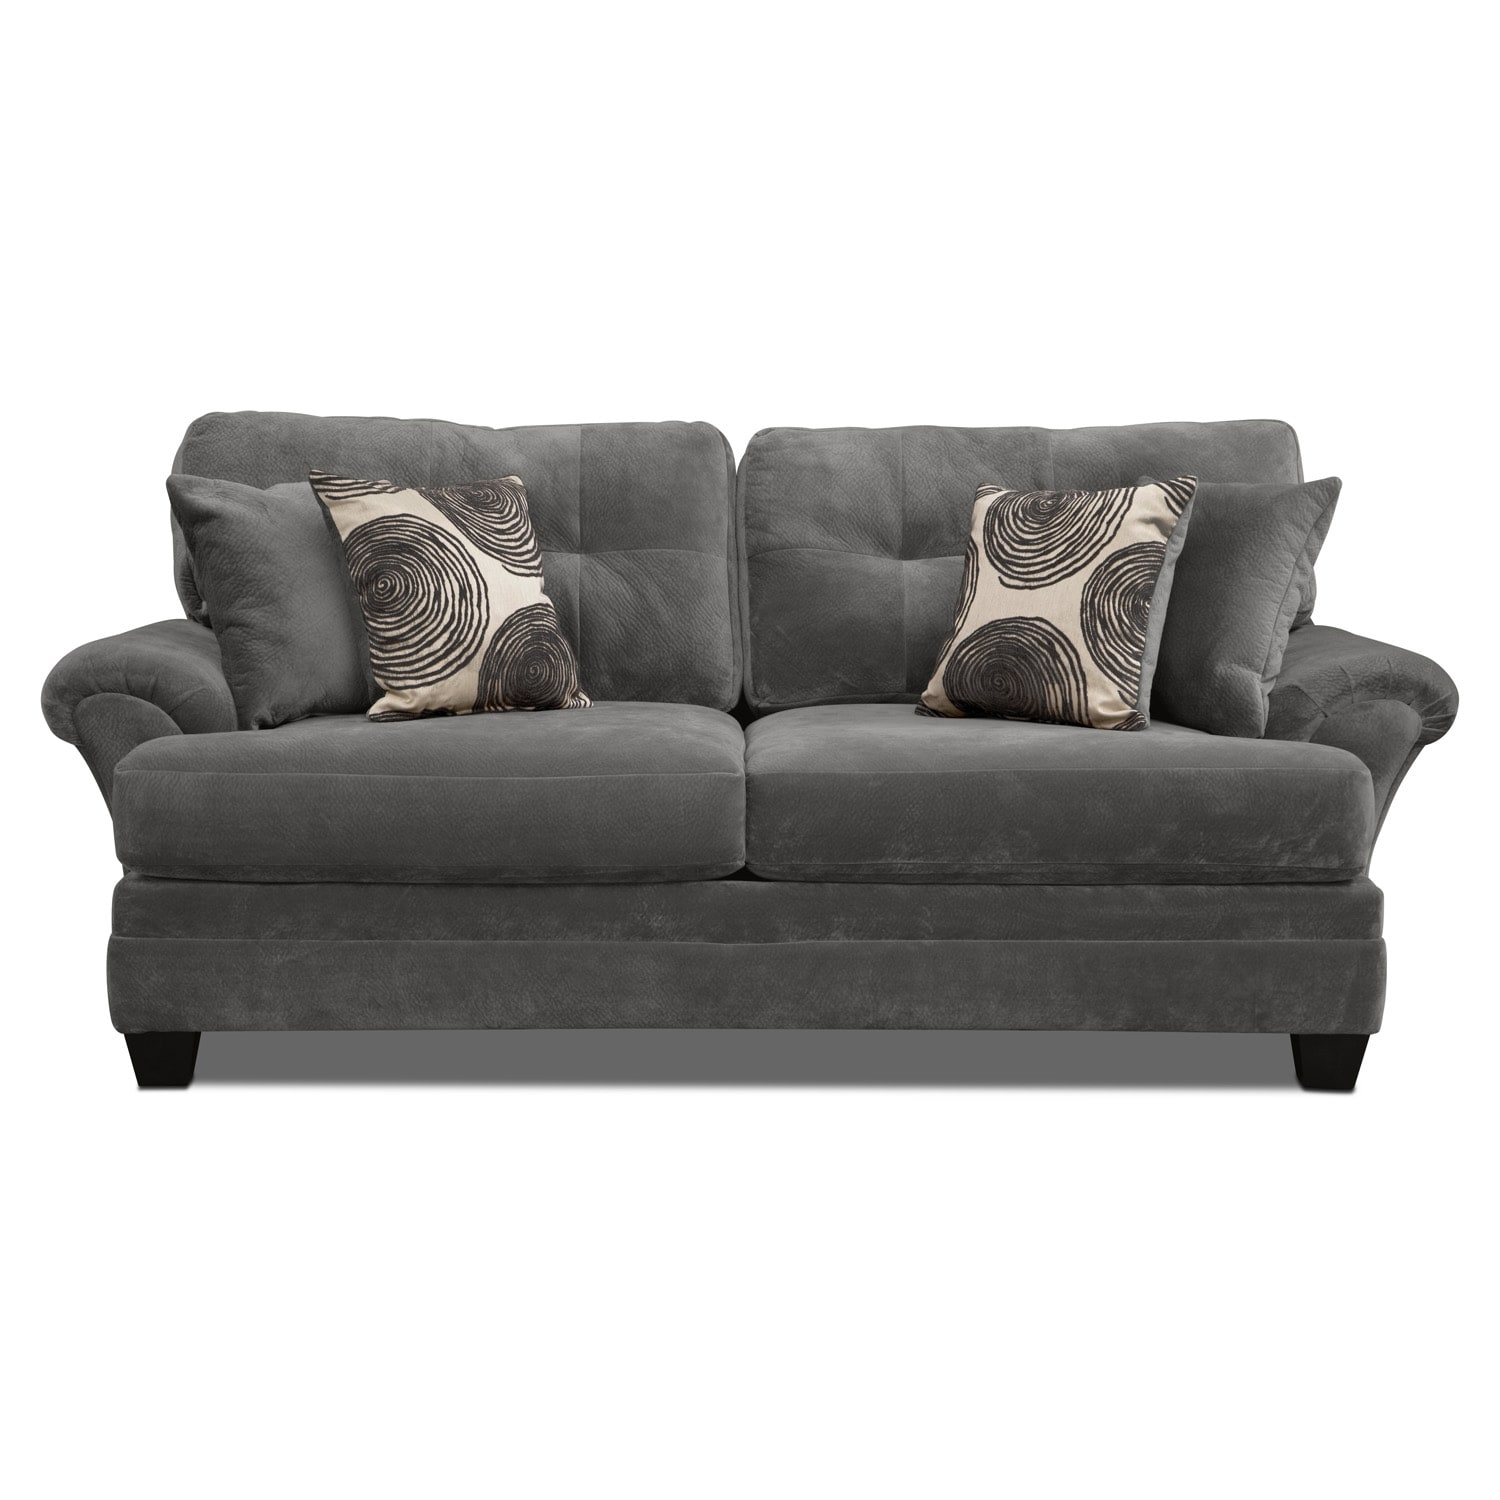 Cordelle sofa gray american signature furniture for American signature couch